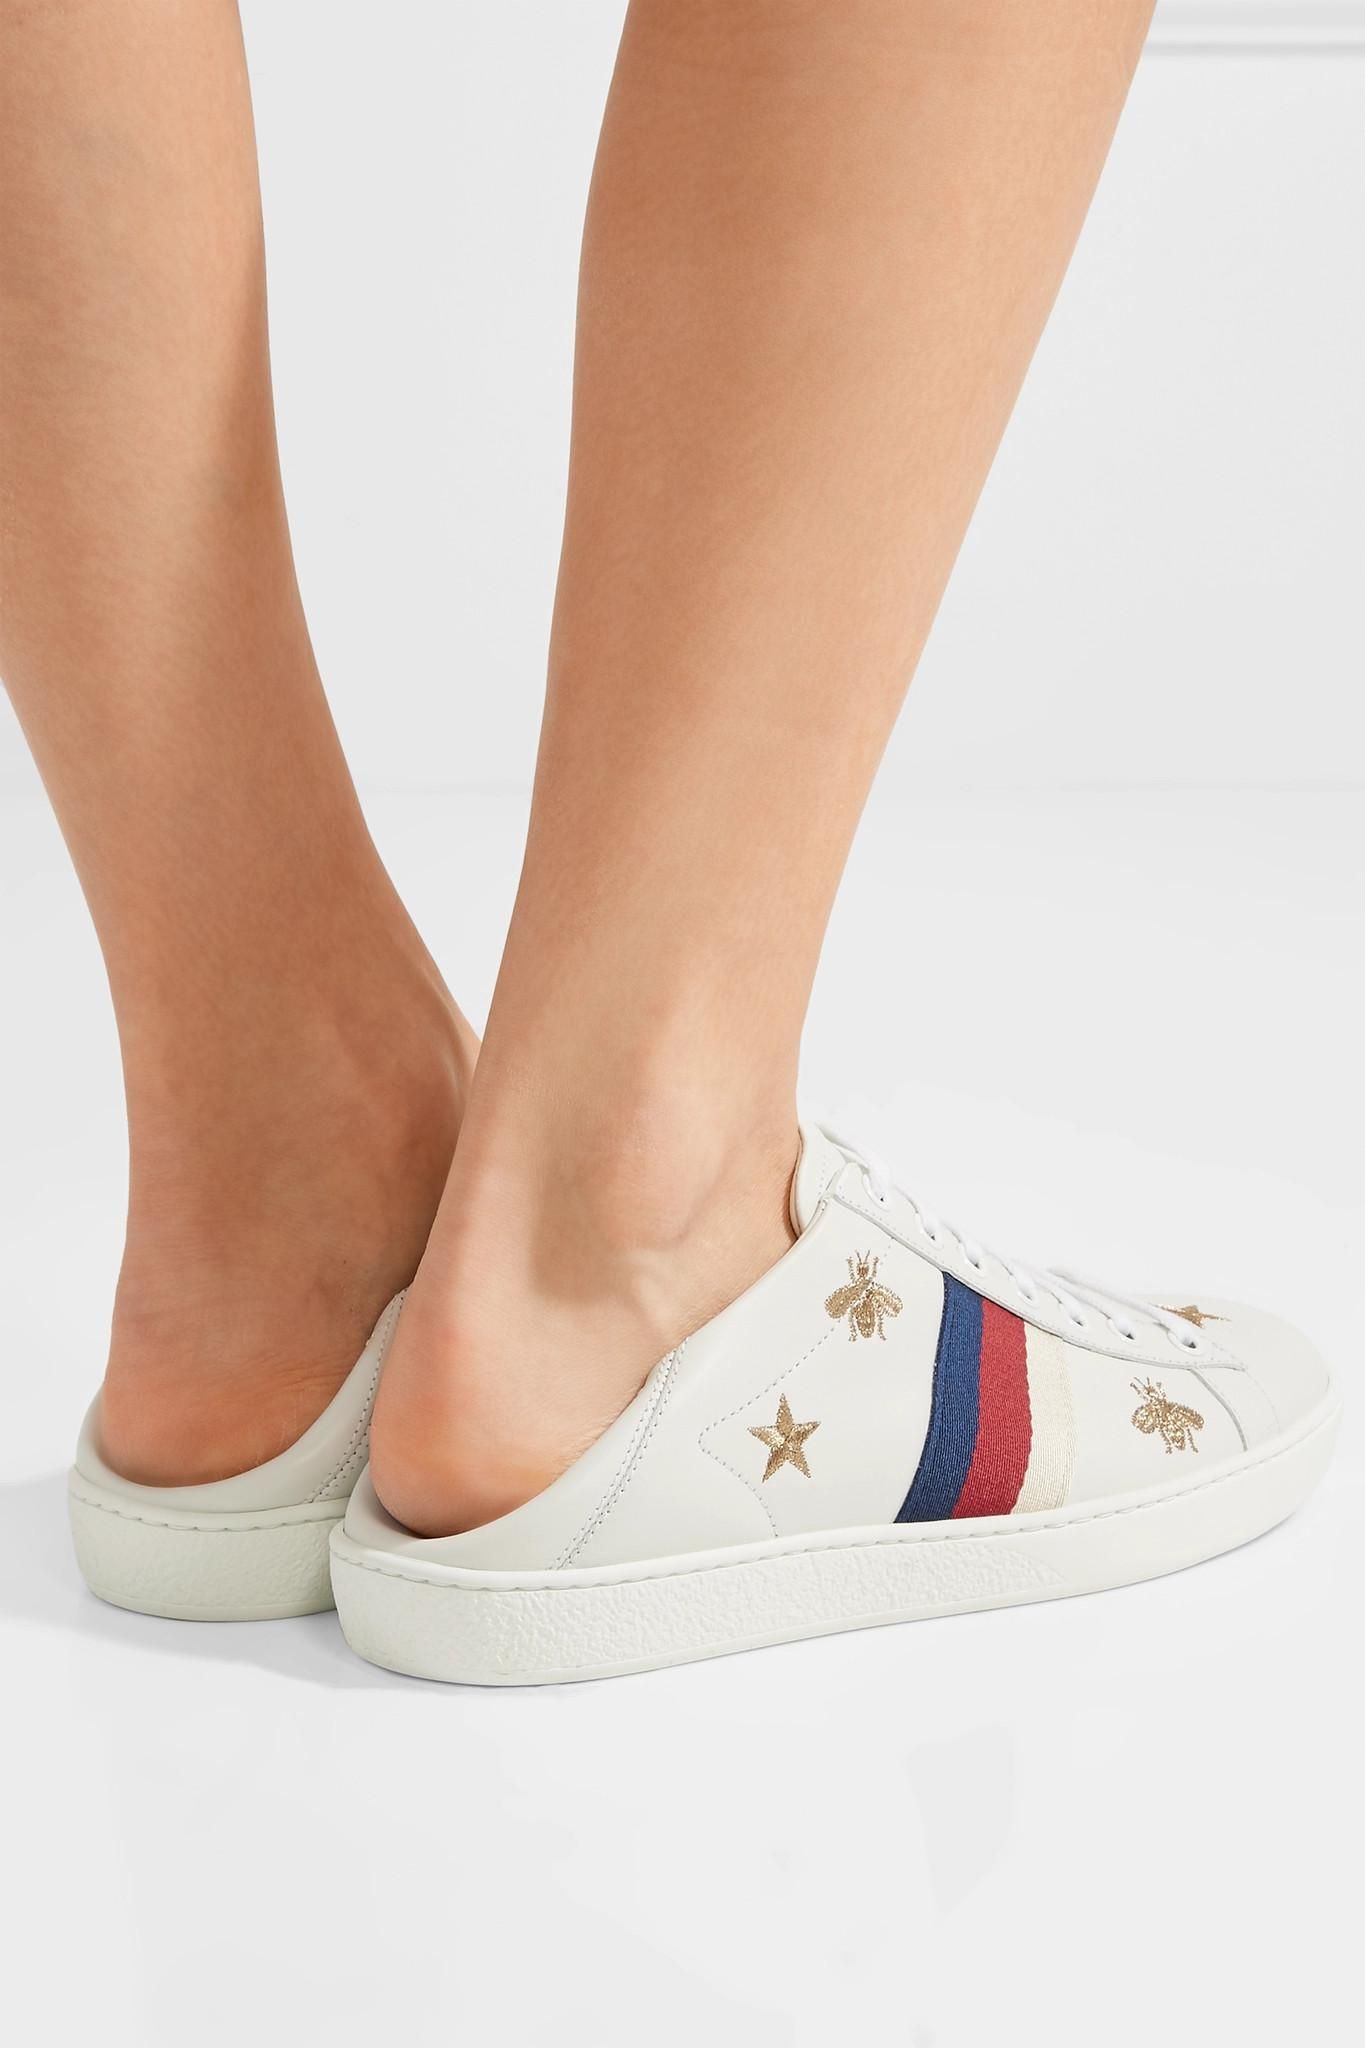 6a9a9ef1e6f Gucci - White Ace Embroidered Collapsible-heel Leather Sneakers - Lyst.  View fullscreen